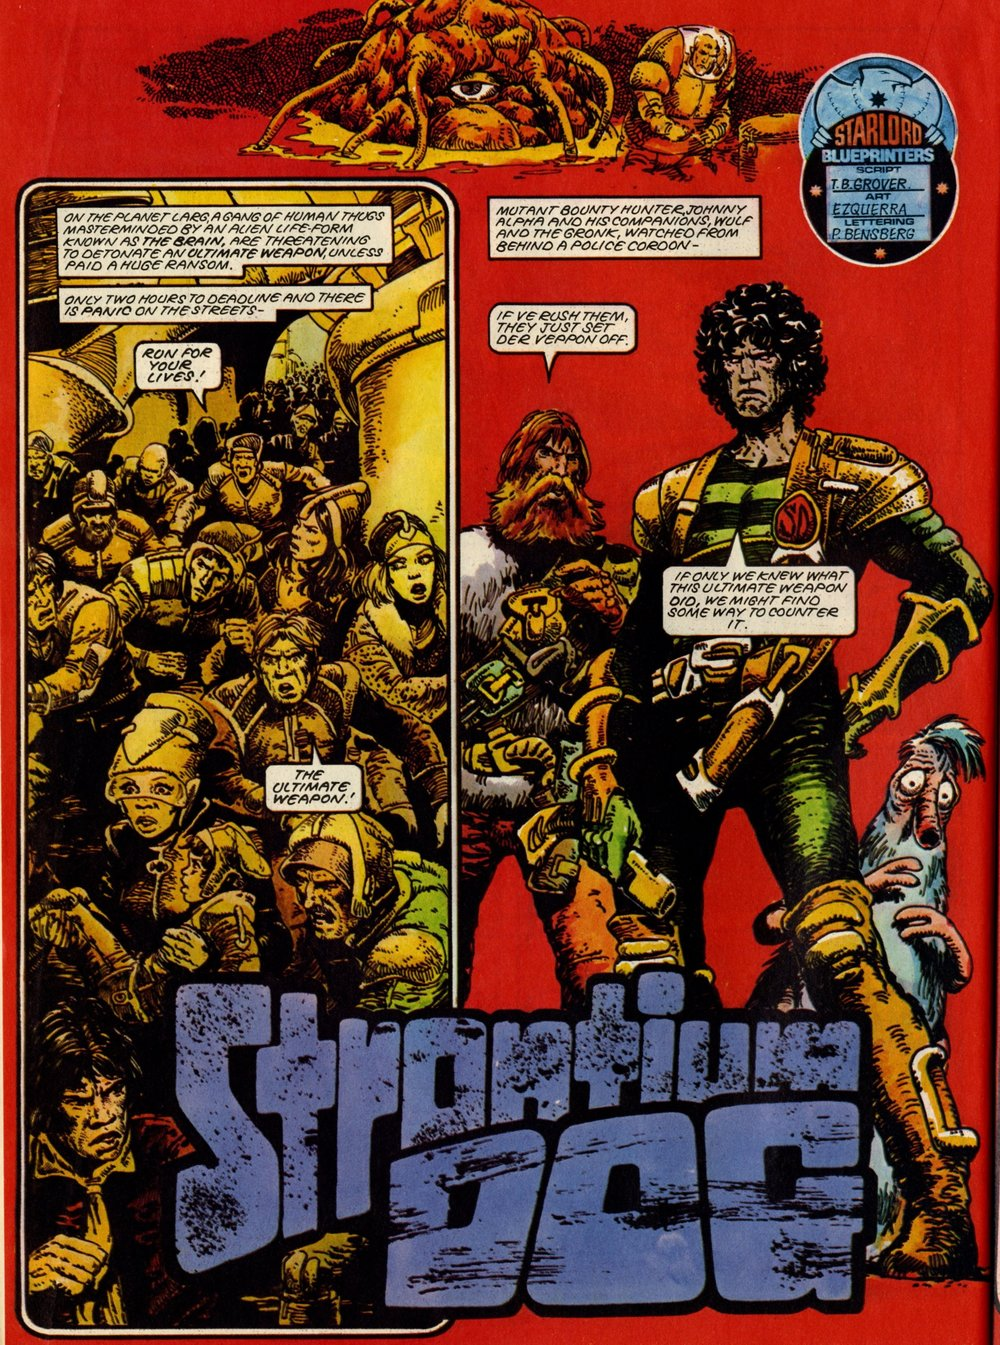 Strontium Dog: John Wagner and Alan Grant (writers), Carlos Ezquerra (artist)